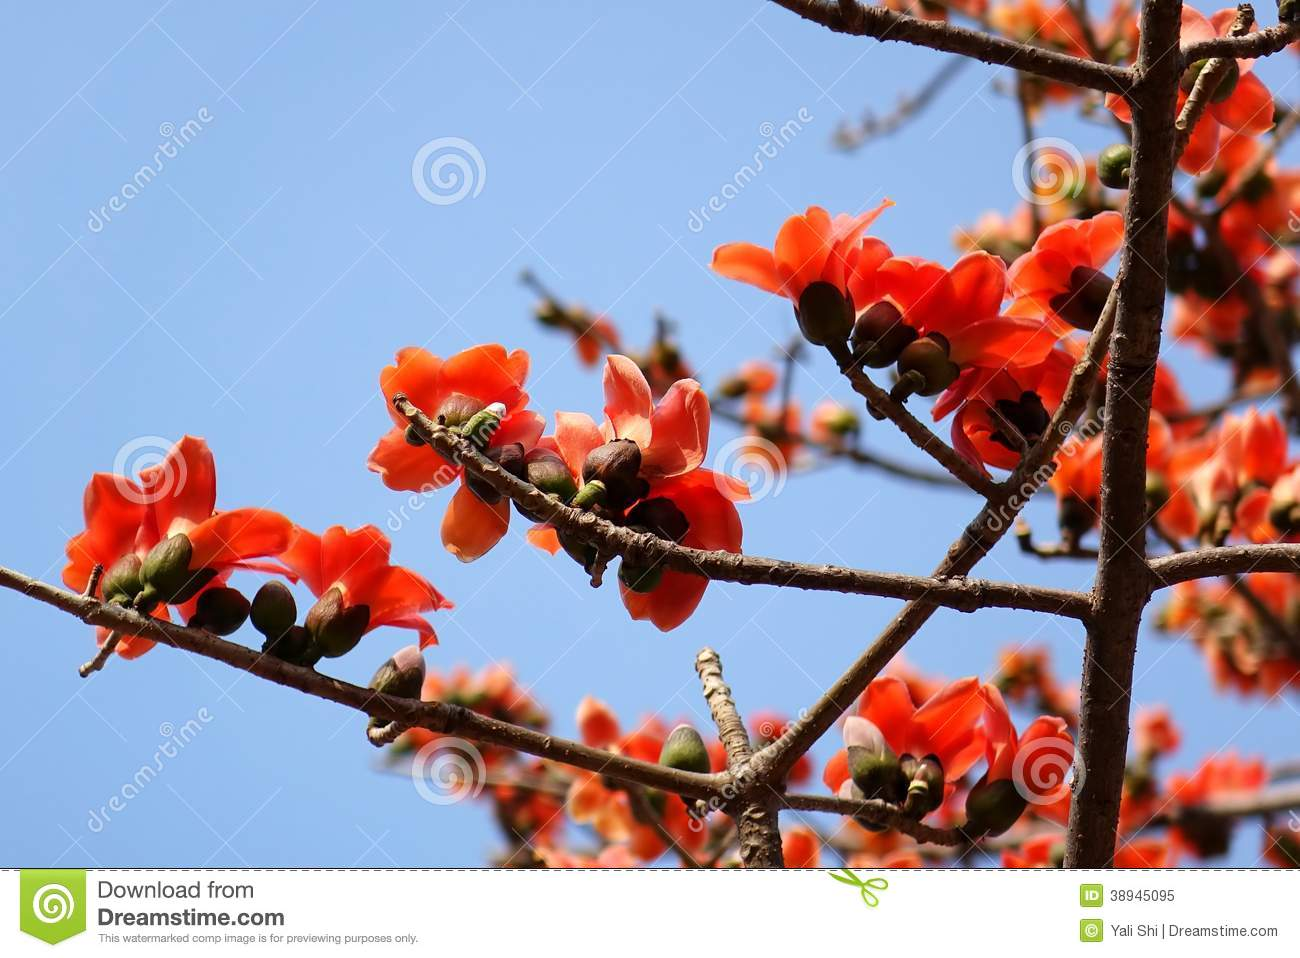 Flowers of the red silk cotton tree stock photo image 38945095 flower red tree dhlflorist Gallery